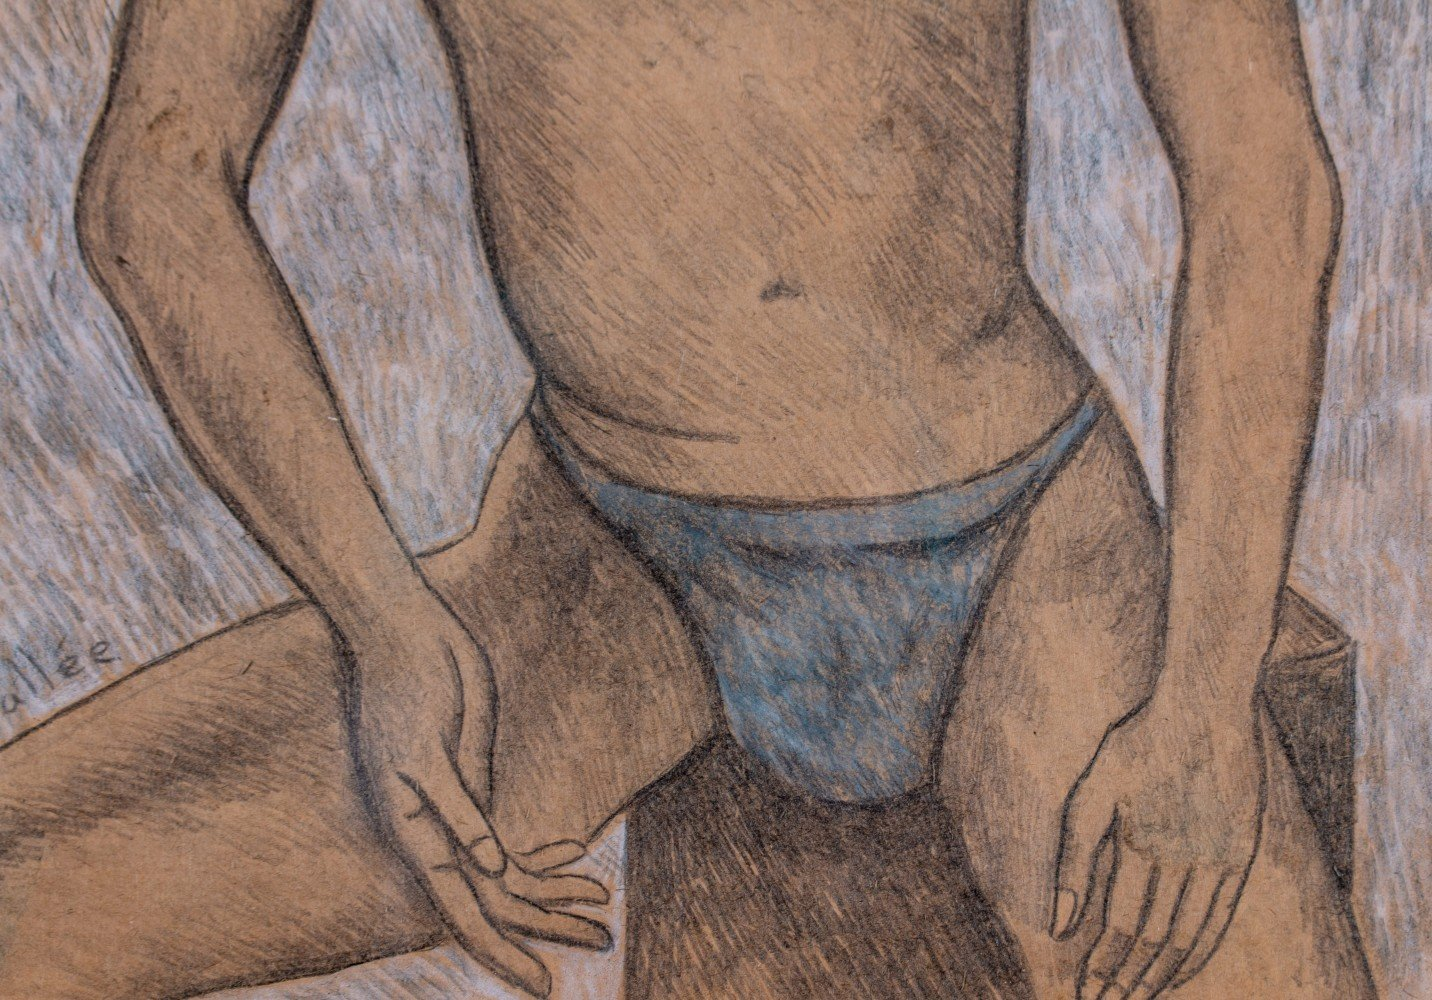 Figurative Colored Pencil on Paper Drawing: